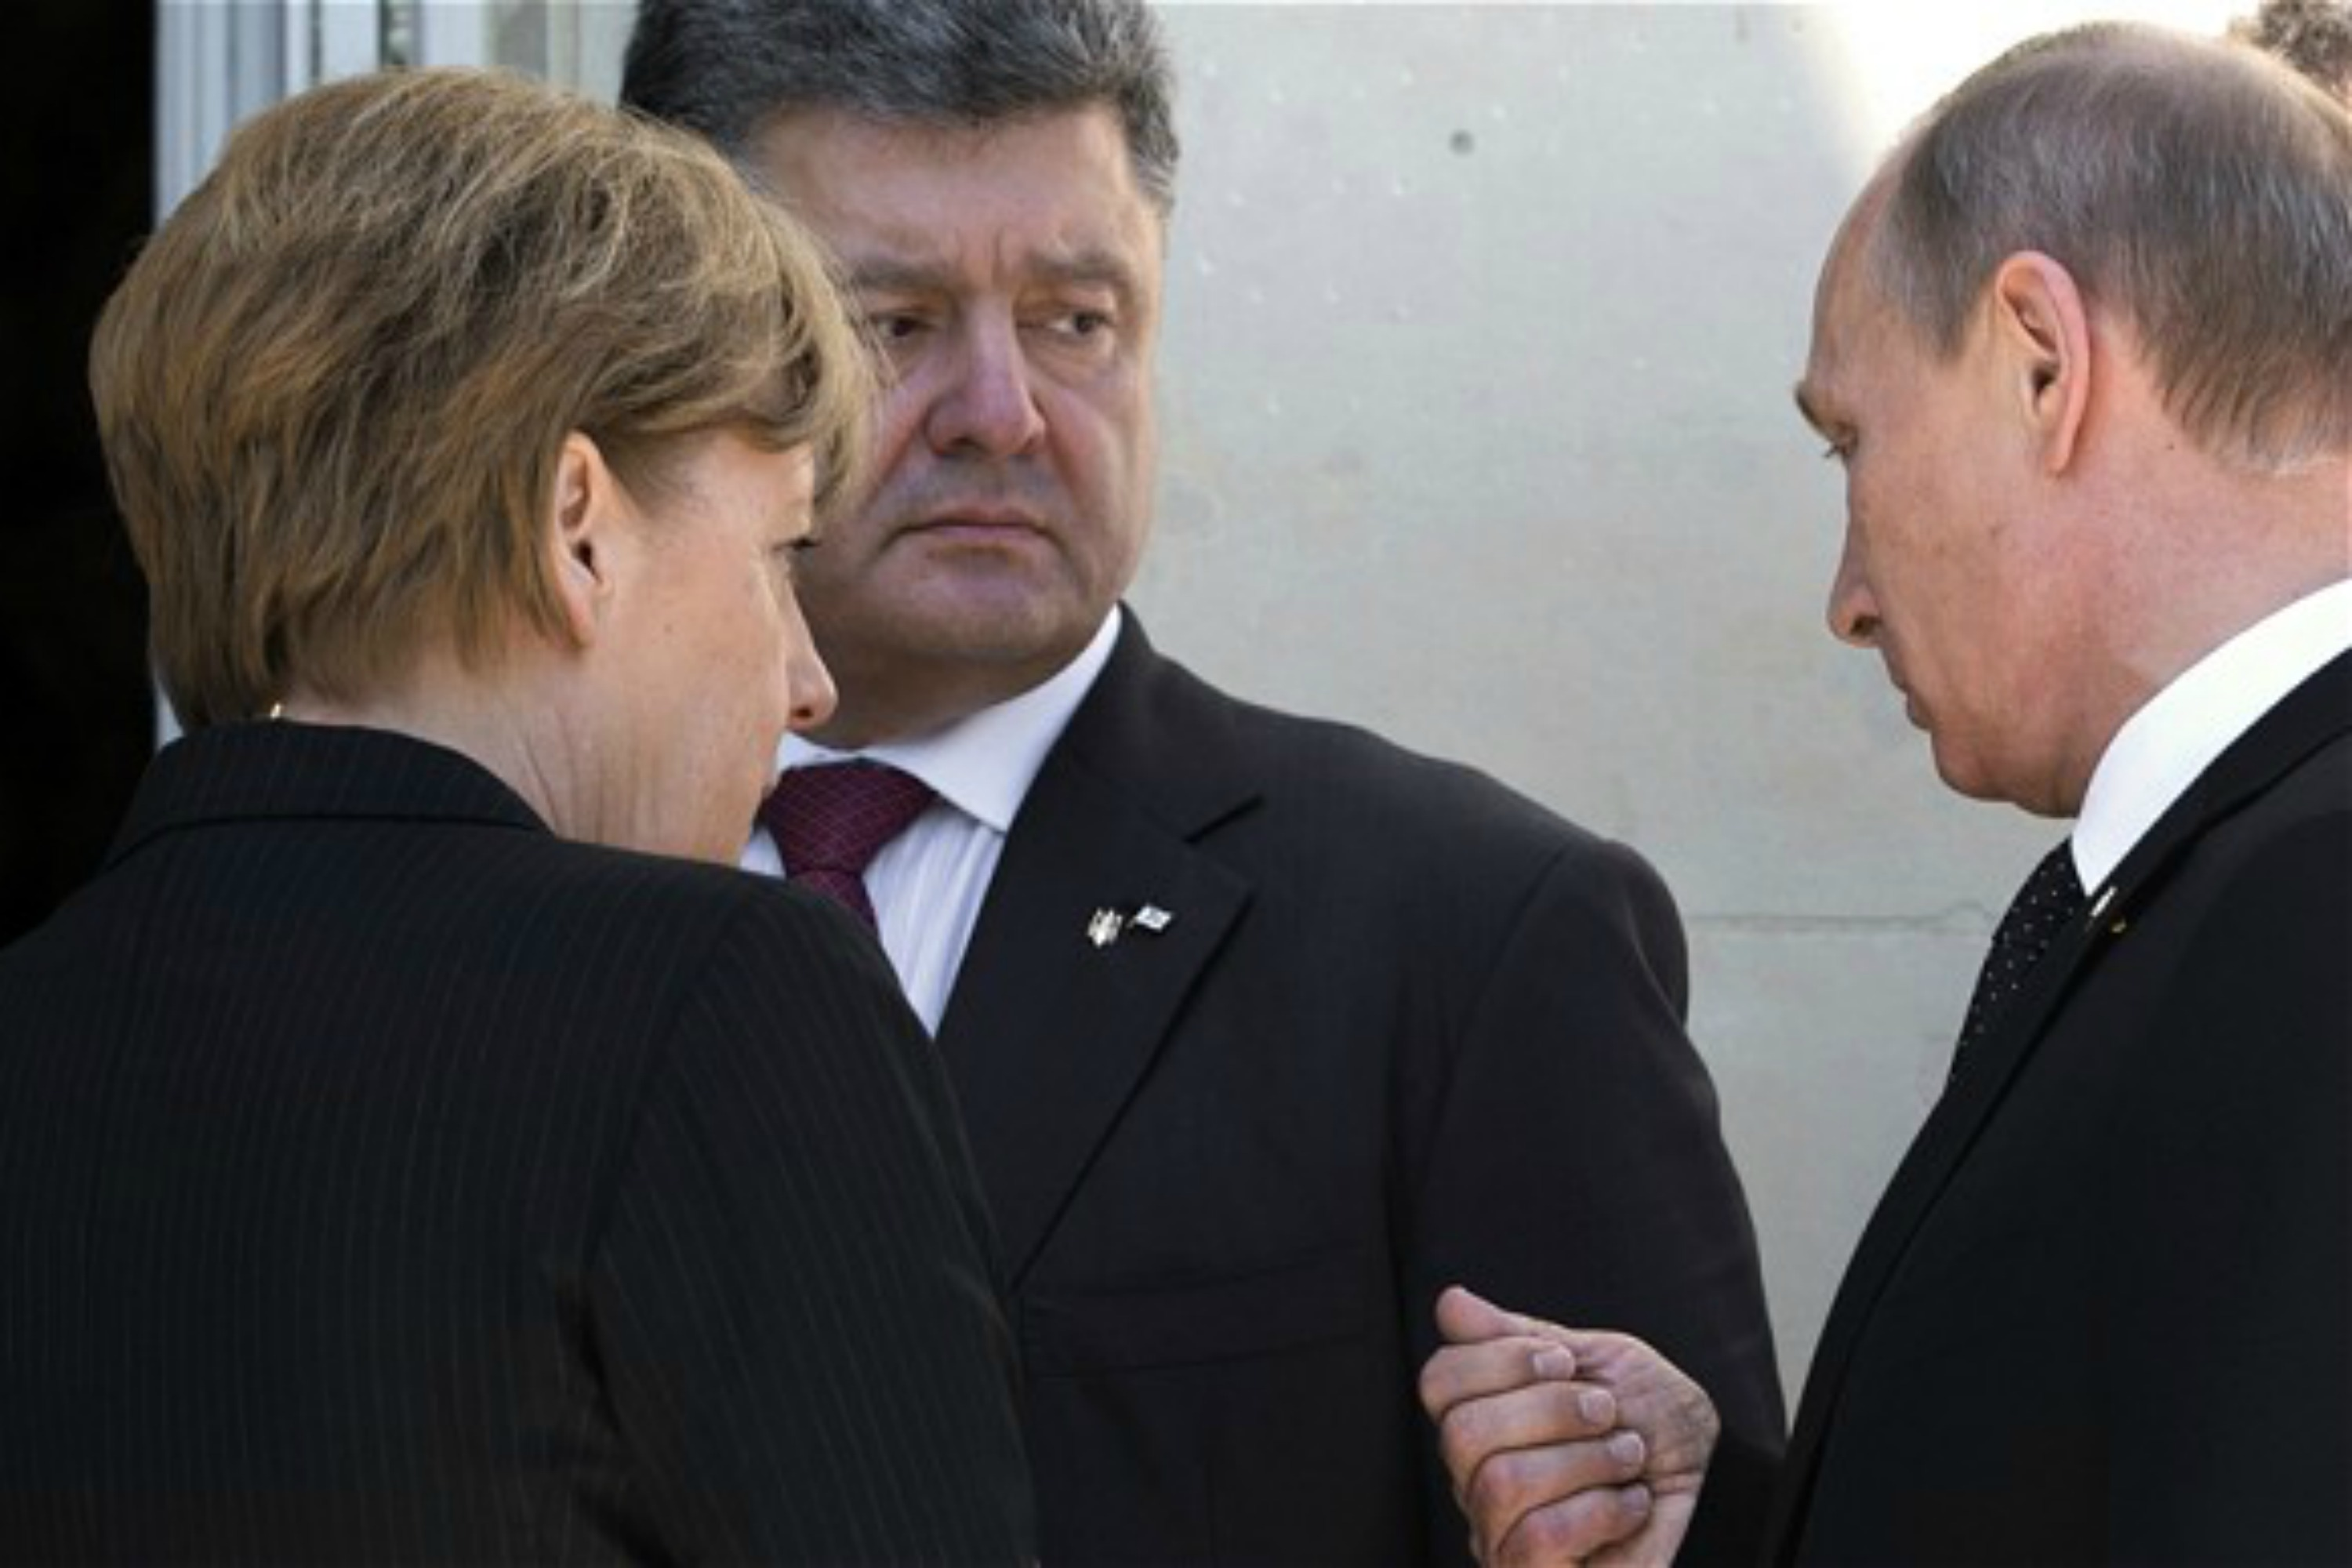 Angela Merkel. Petro Poroshenko, Vladimir Putin at Normandy